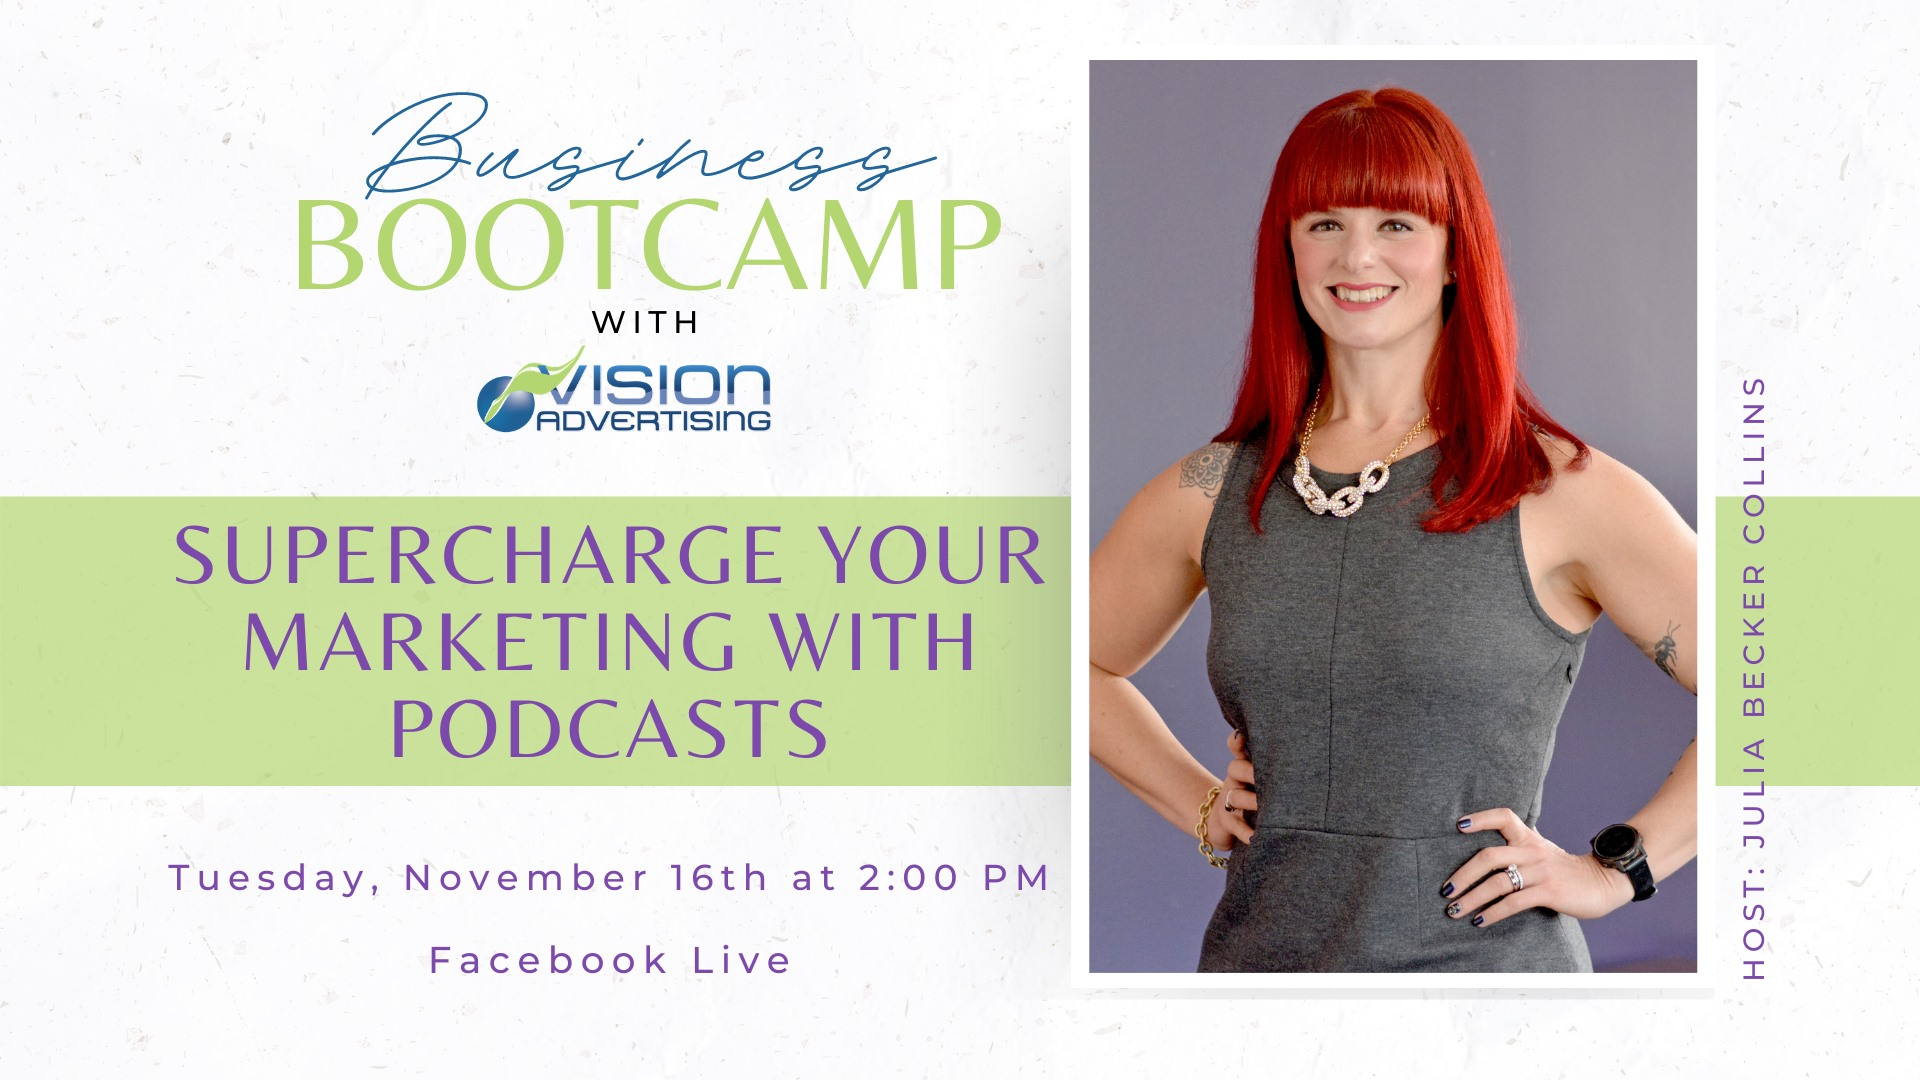 Supercharge Your Marketing With Podcasts with Julia Becker Collins.